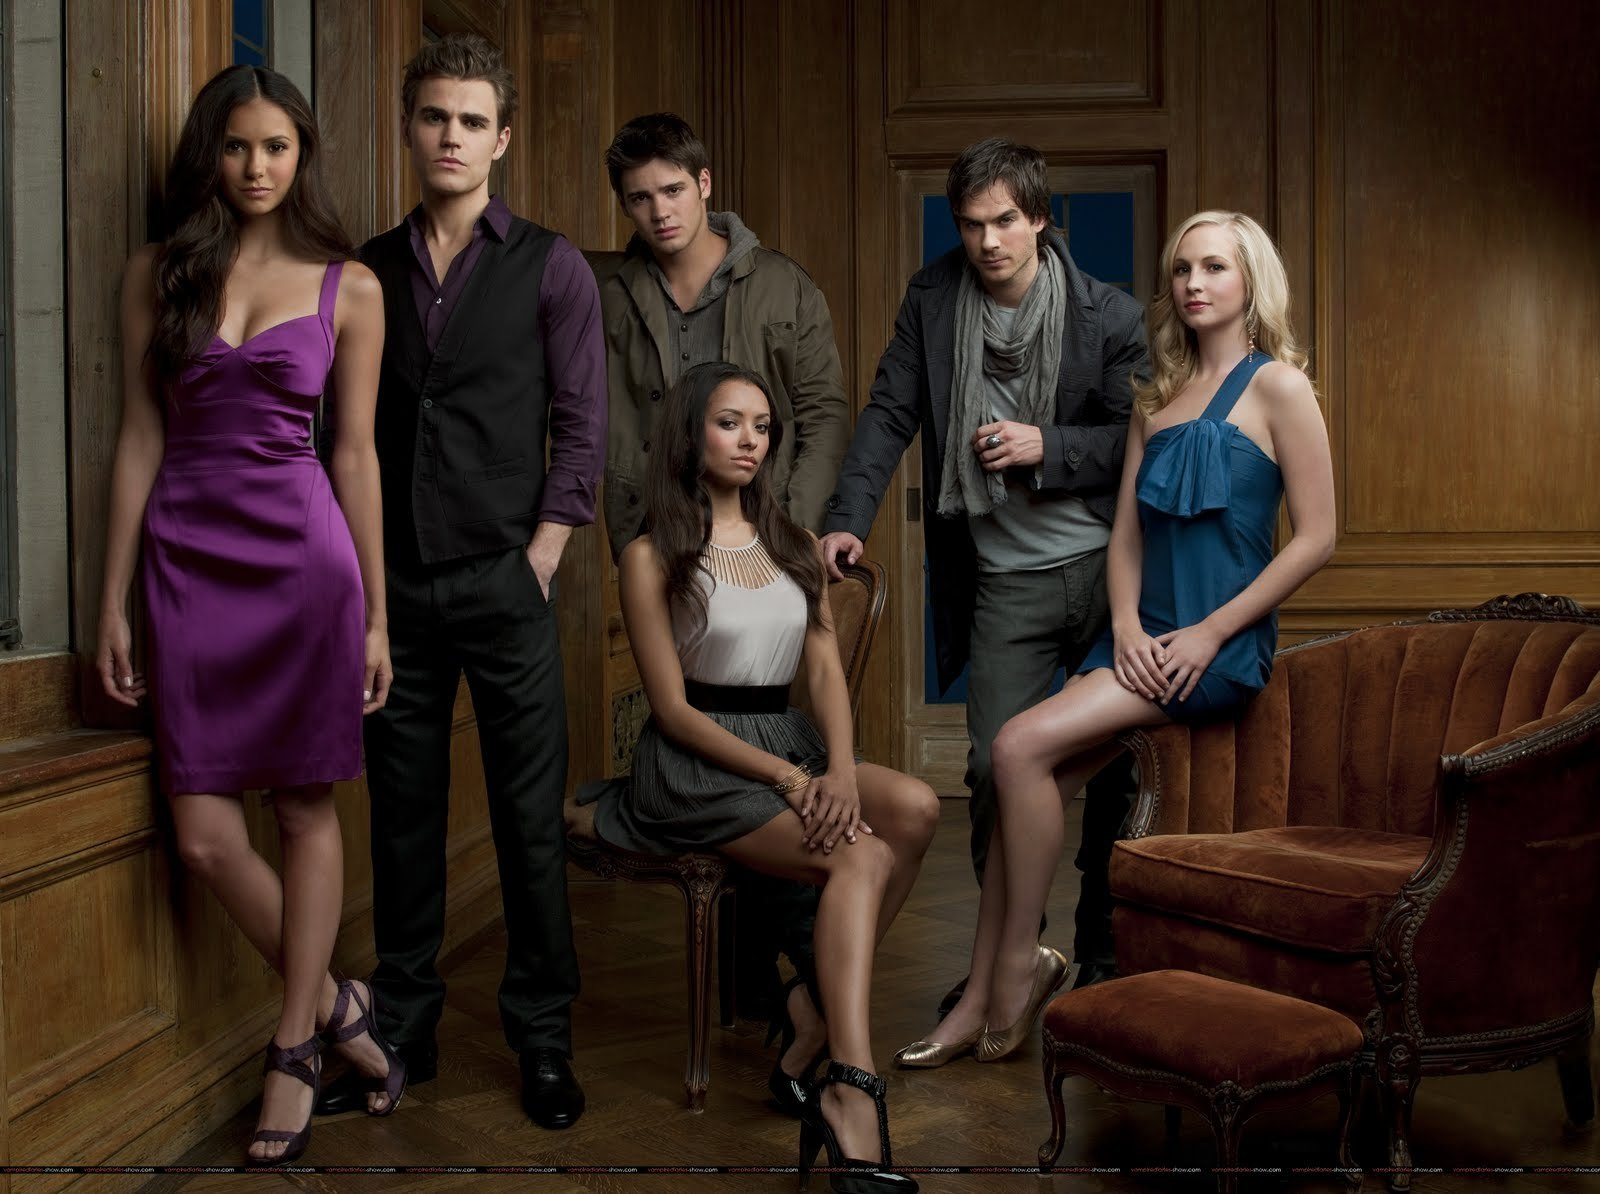 http://images2.fanpop.com/images/photos/8200000/New-cast-promo-pictures-the-vampire-diaries-tv-show-8246084-1600-1194.jpg